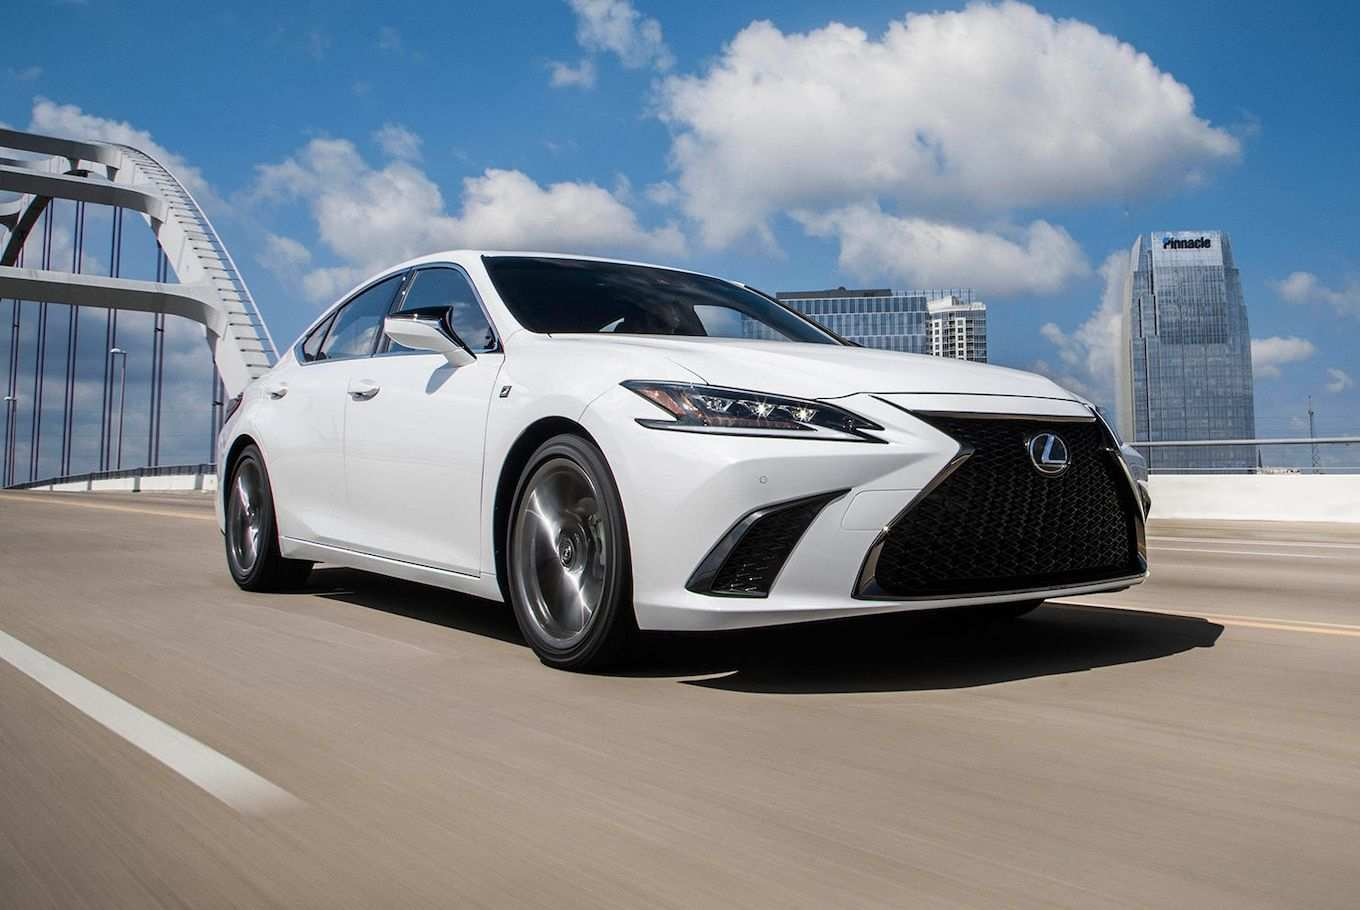 77 All New Lexus 2020 Colors Ratings by Lexus 2020 Colors